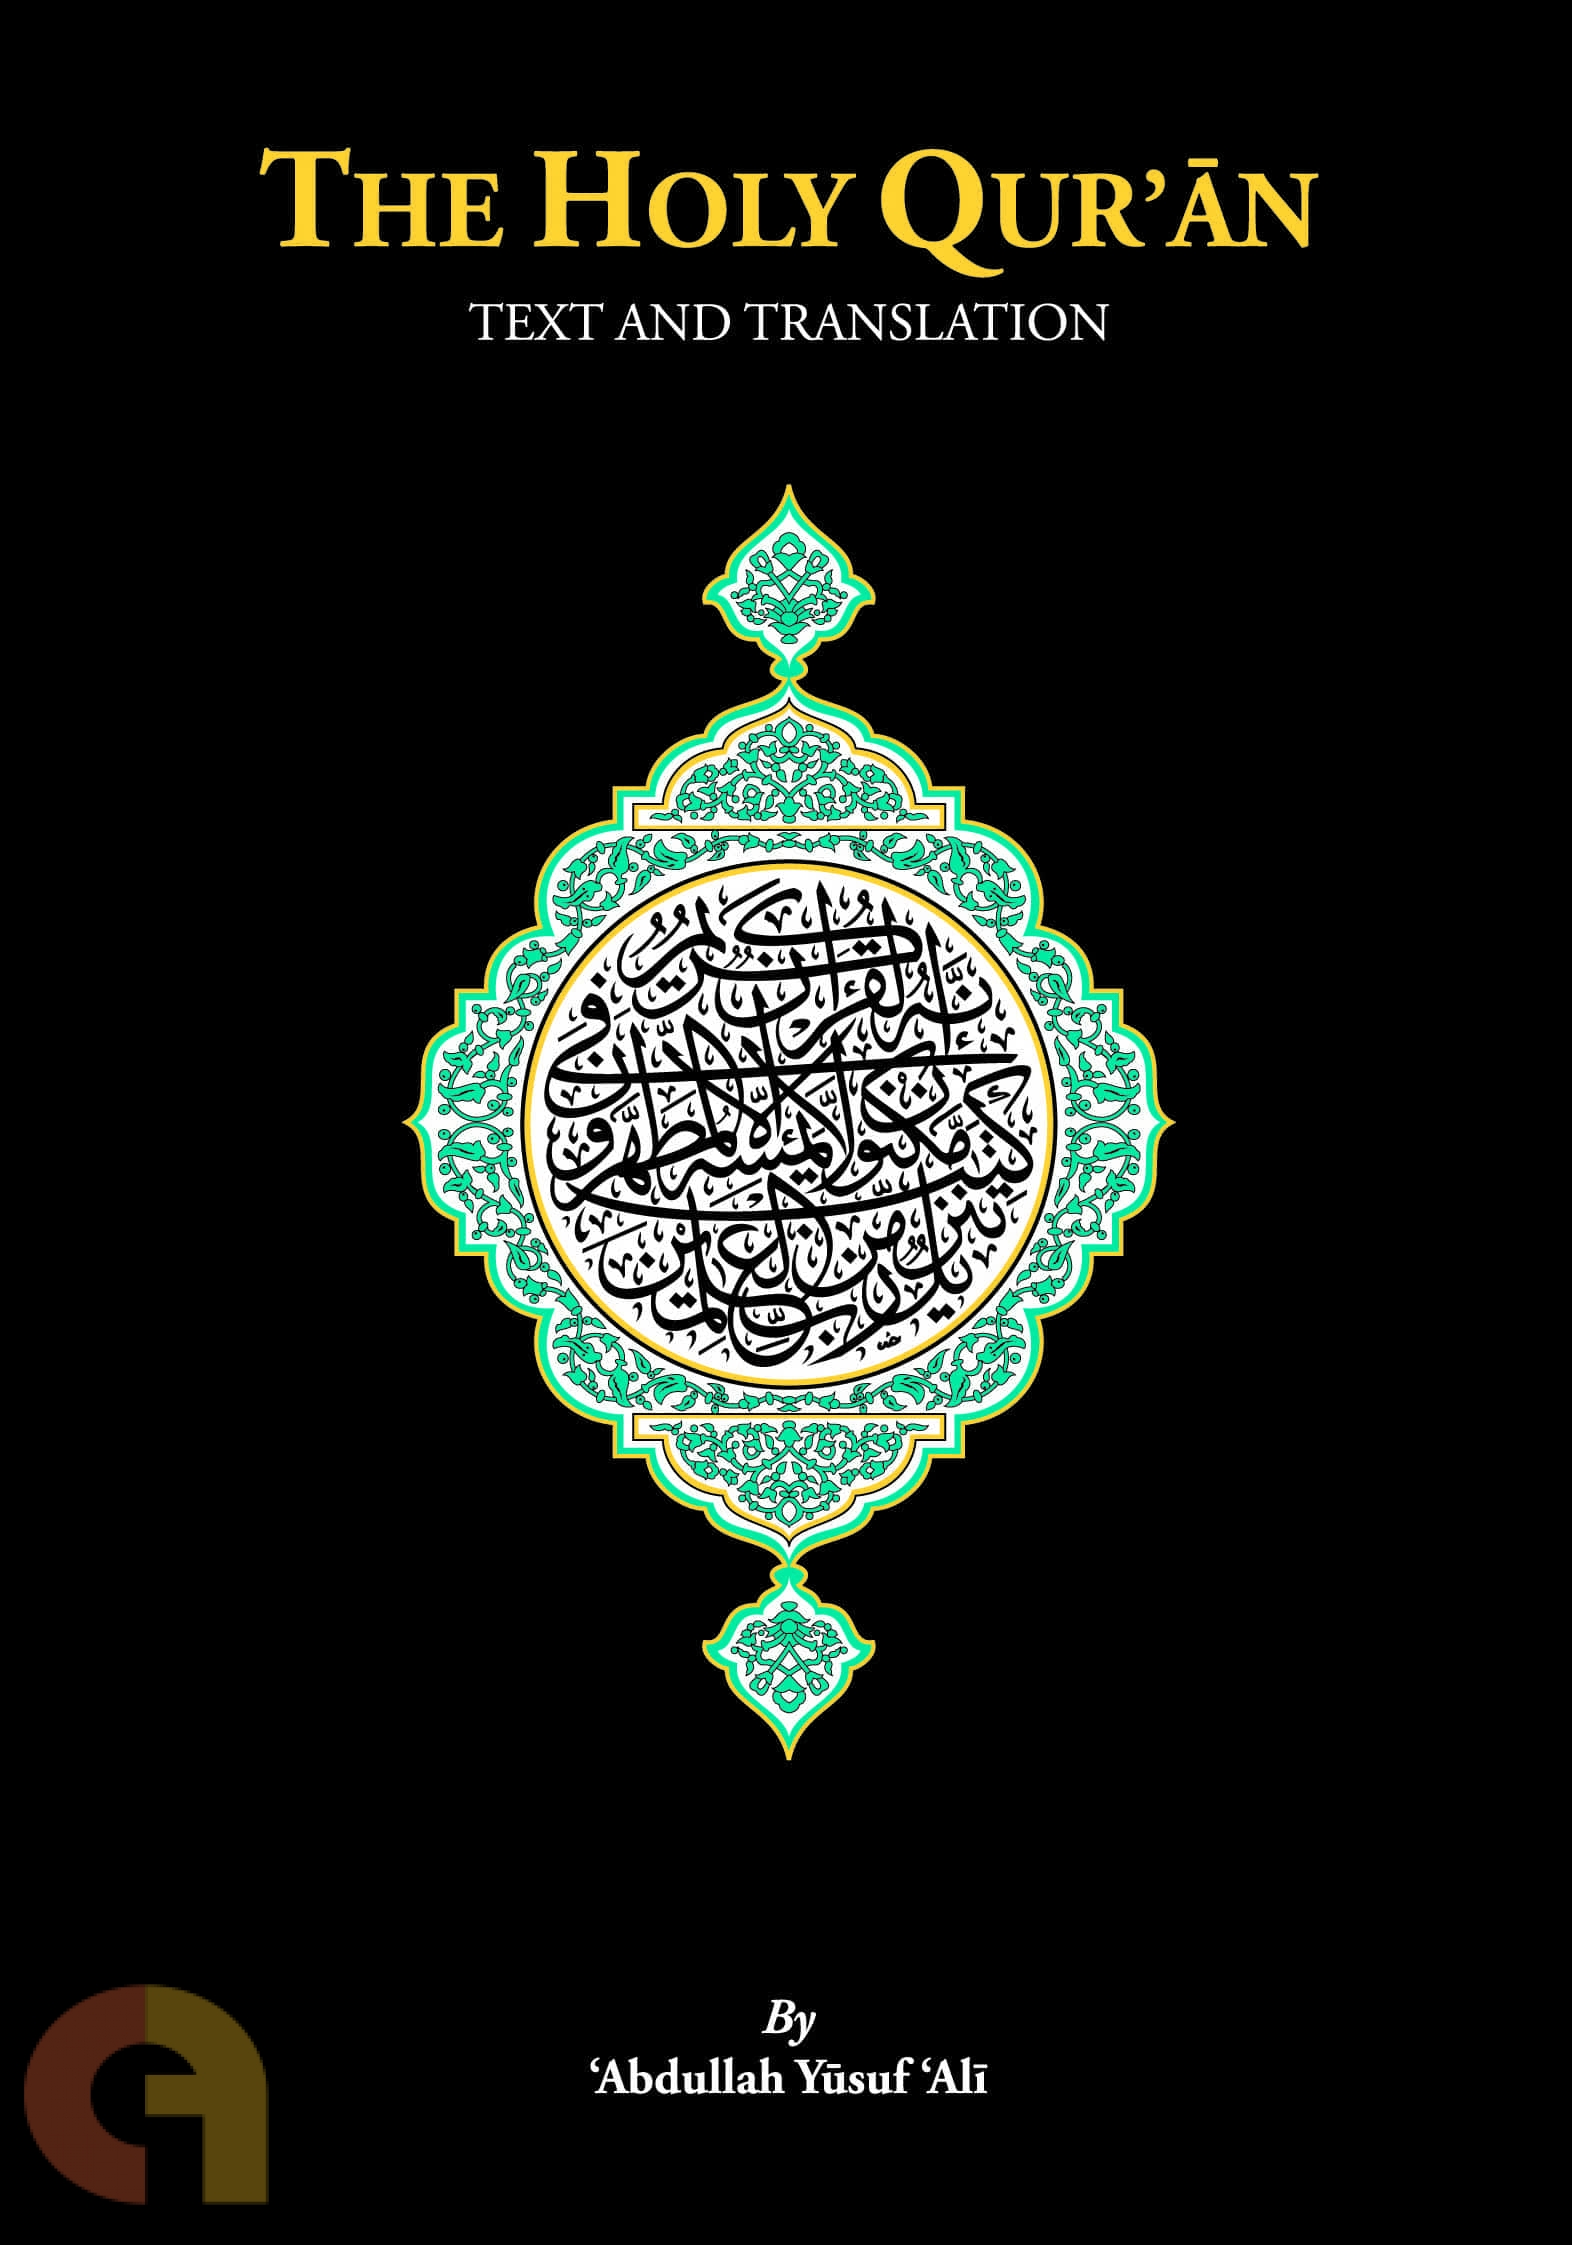 The Holy Qur'an: Text And Translation